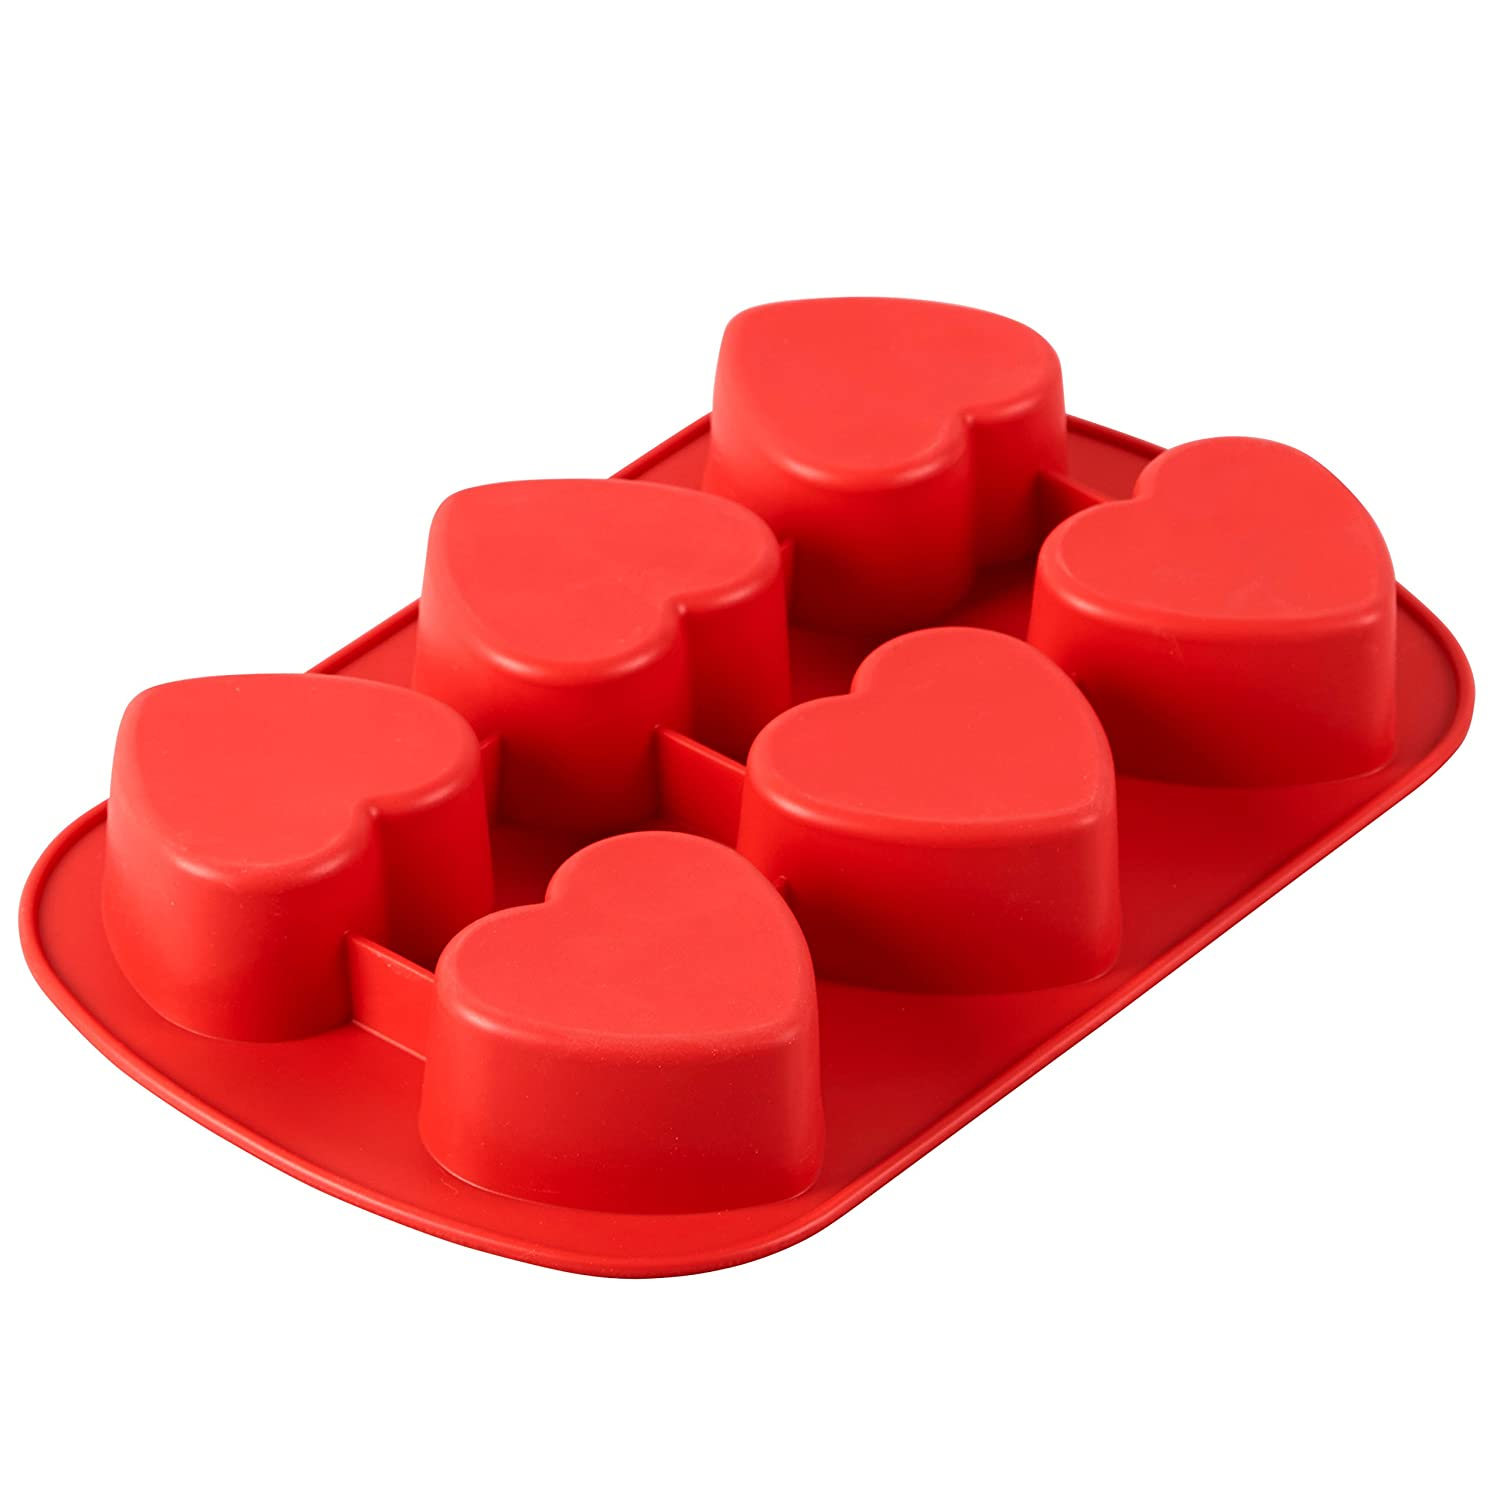 6-Cavity Mold for Heart Shaped Cookies and Candy 2105-4824 Wilton Mini Silicone Heart Mold